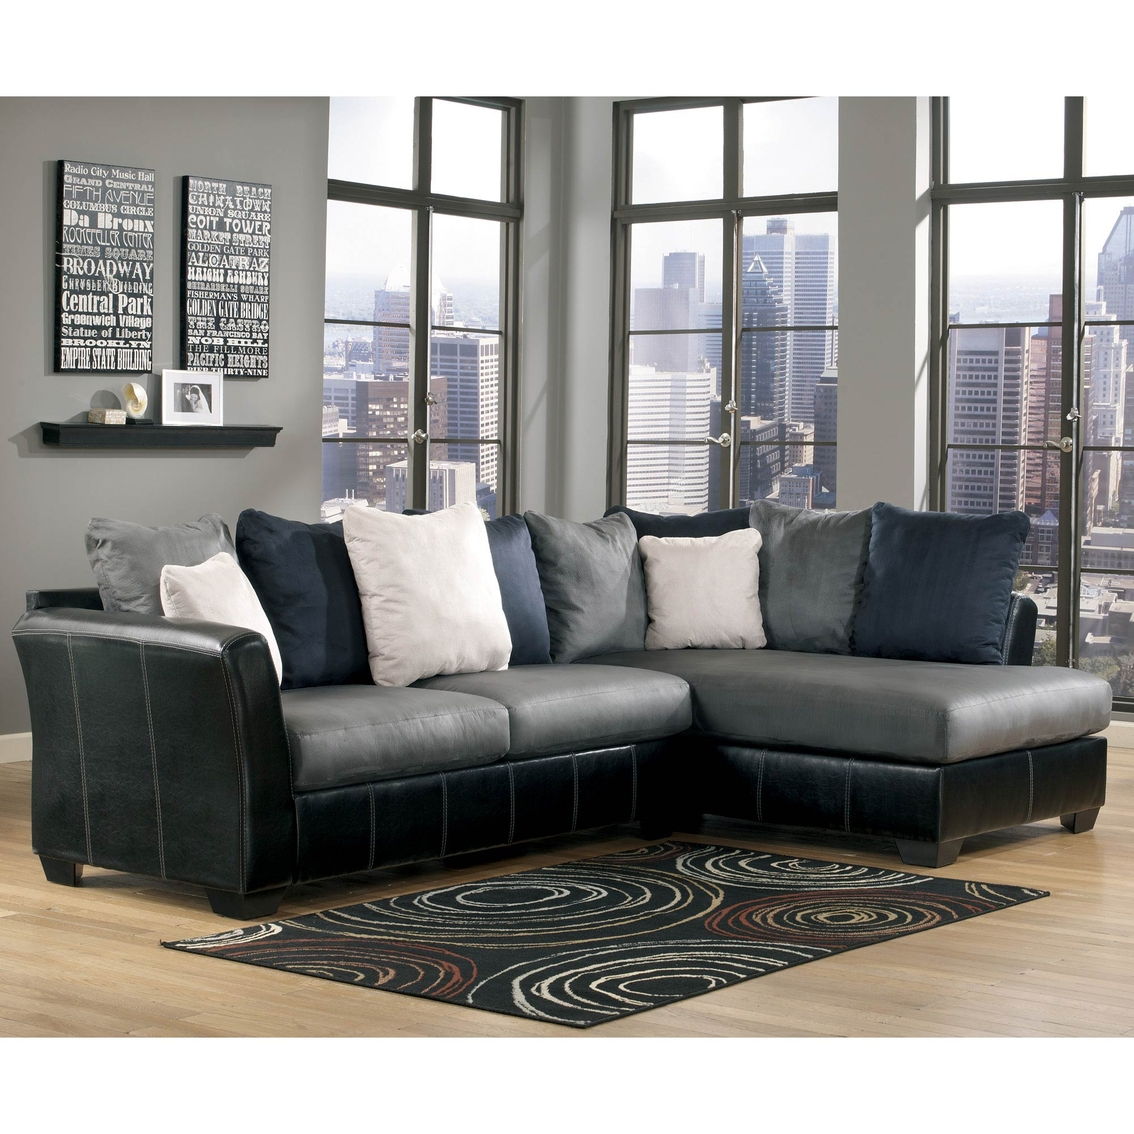 Ashley masoli 2 pc sectional laf sofa raf chaise sofas for Ashley chaise sectional